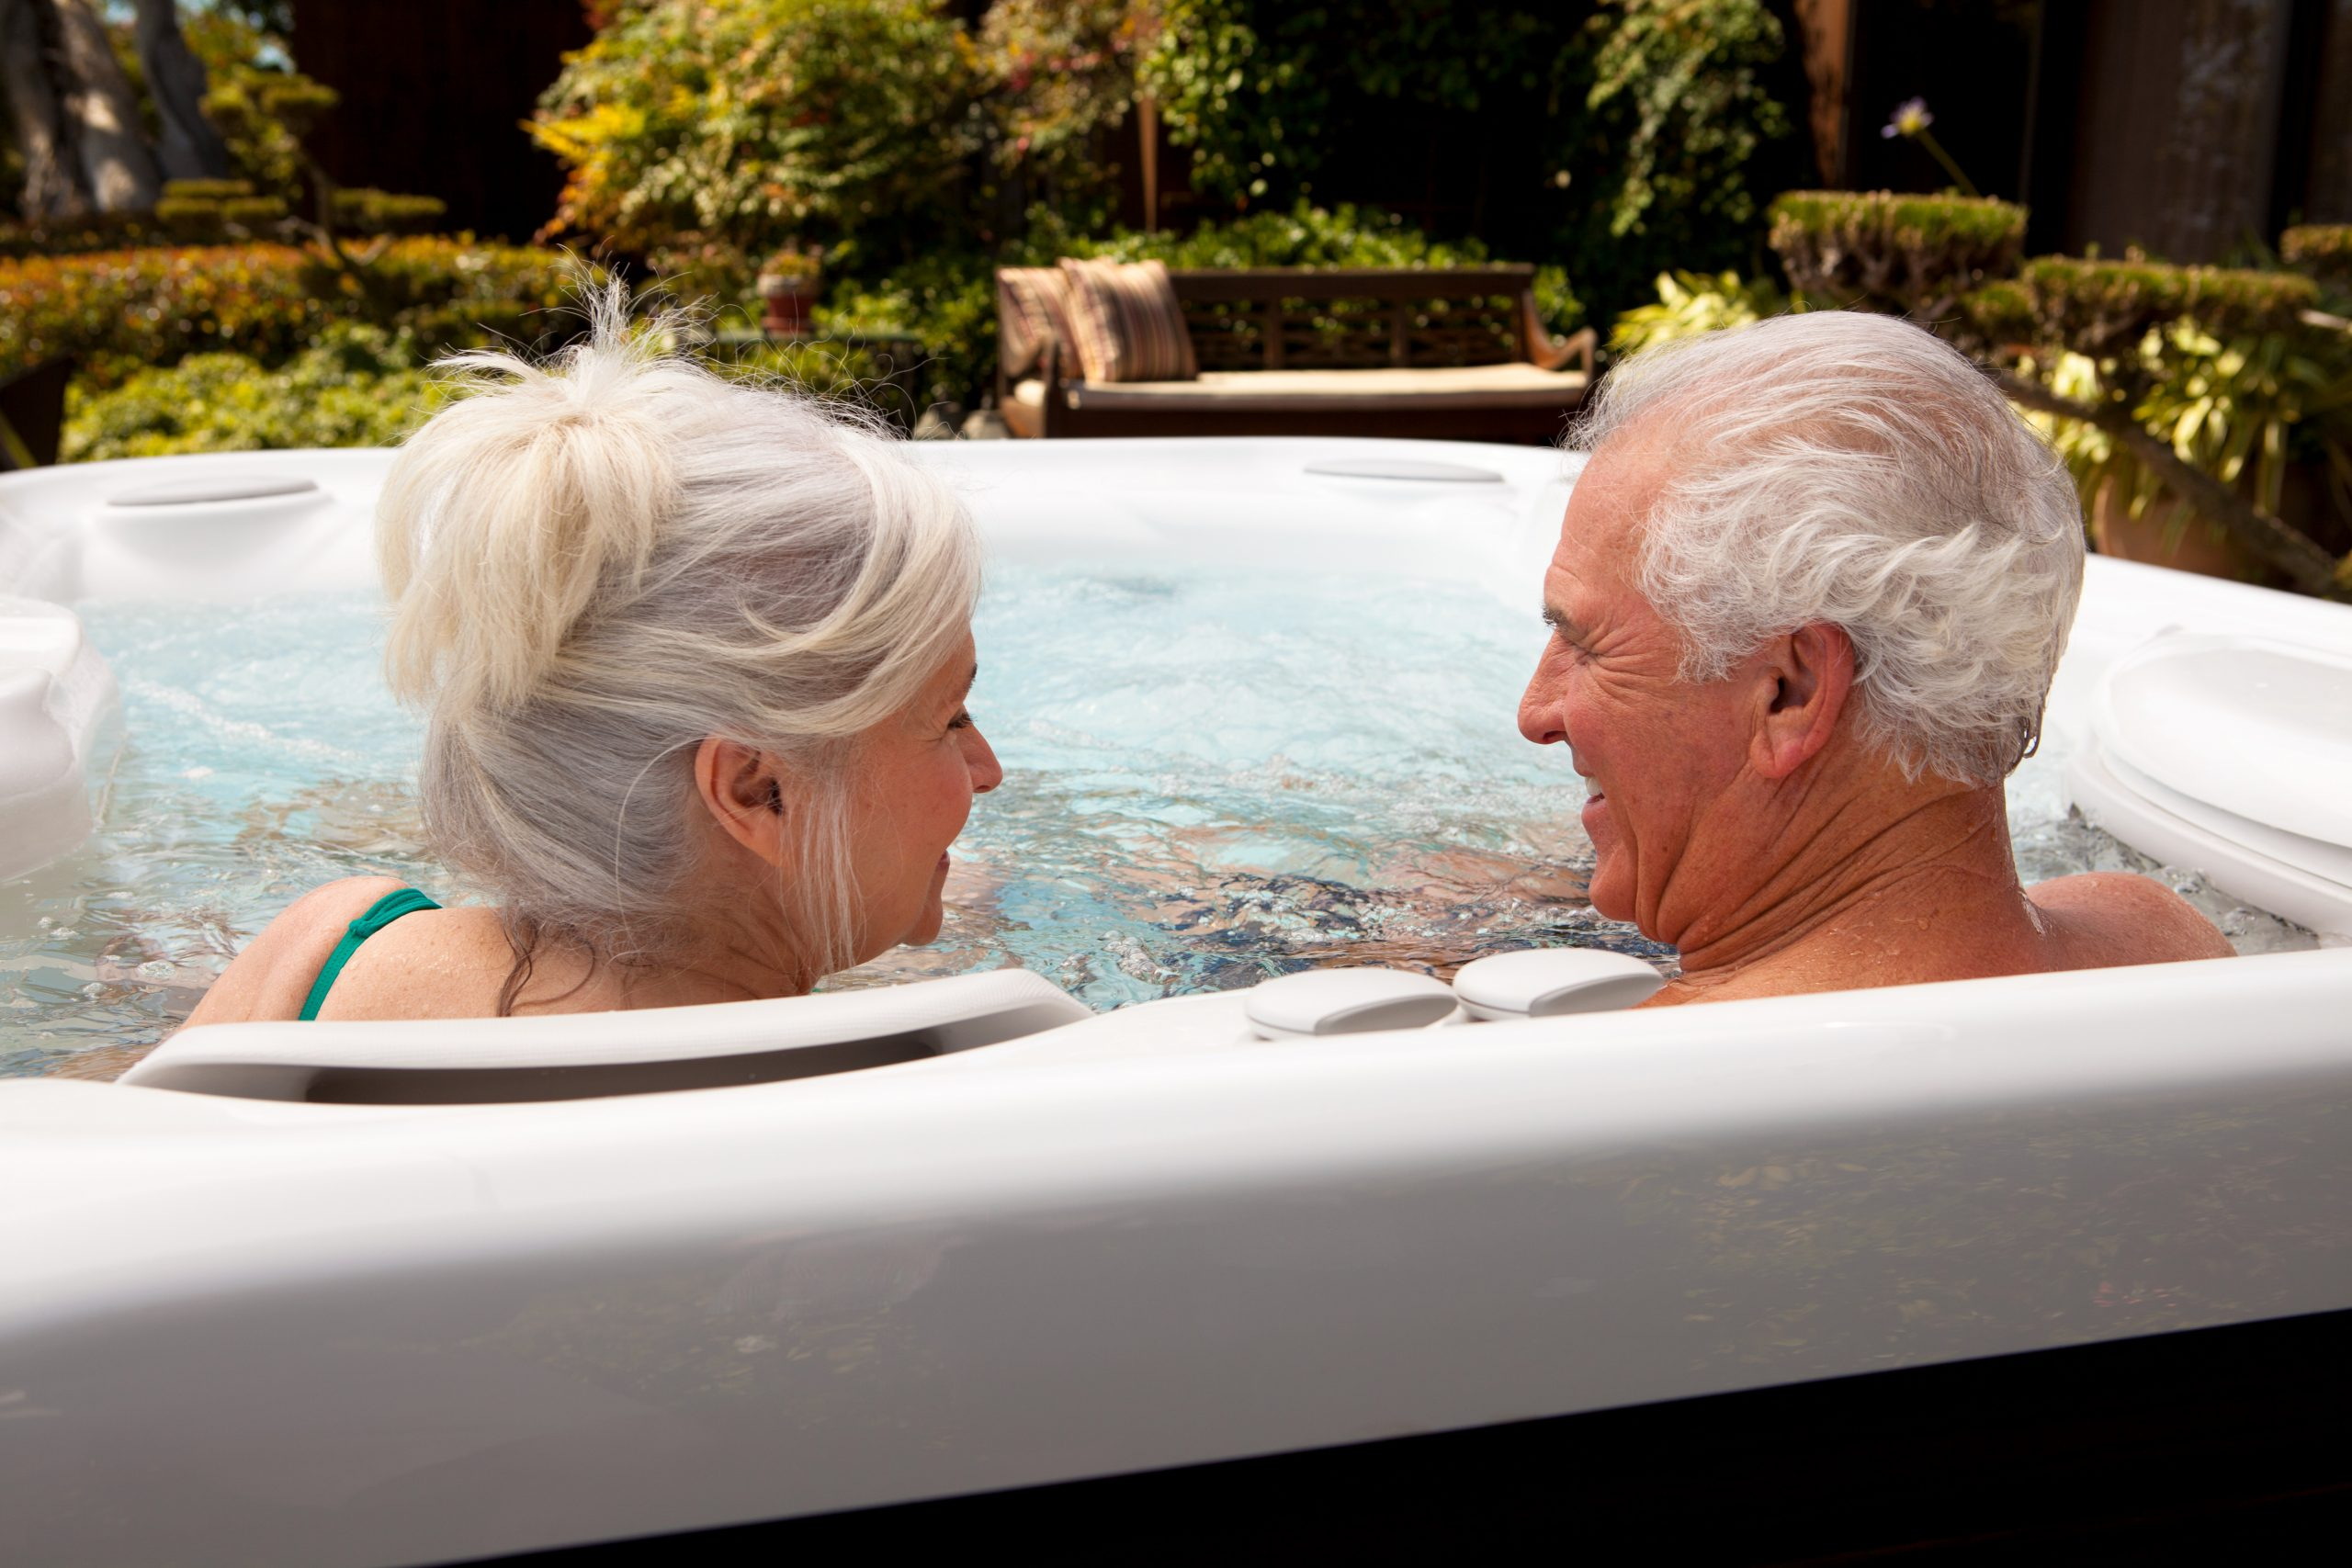 Grandma and Grandpa enjoying hot tub time this mothers day